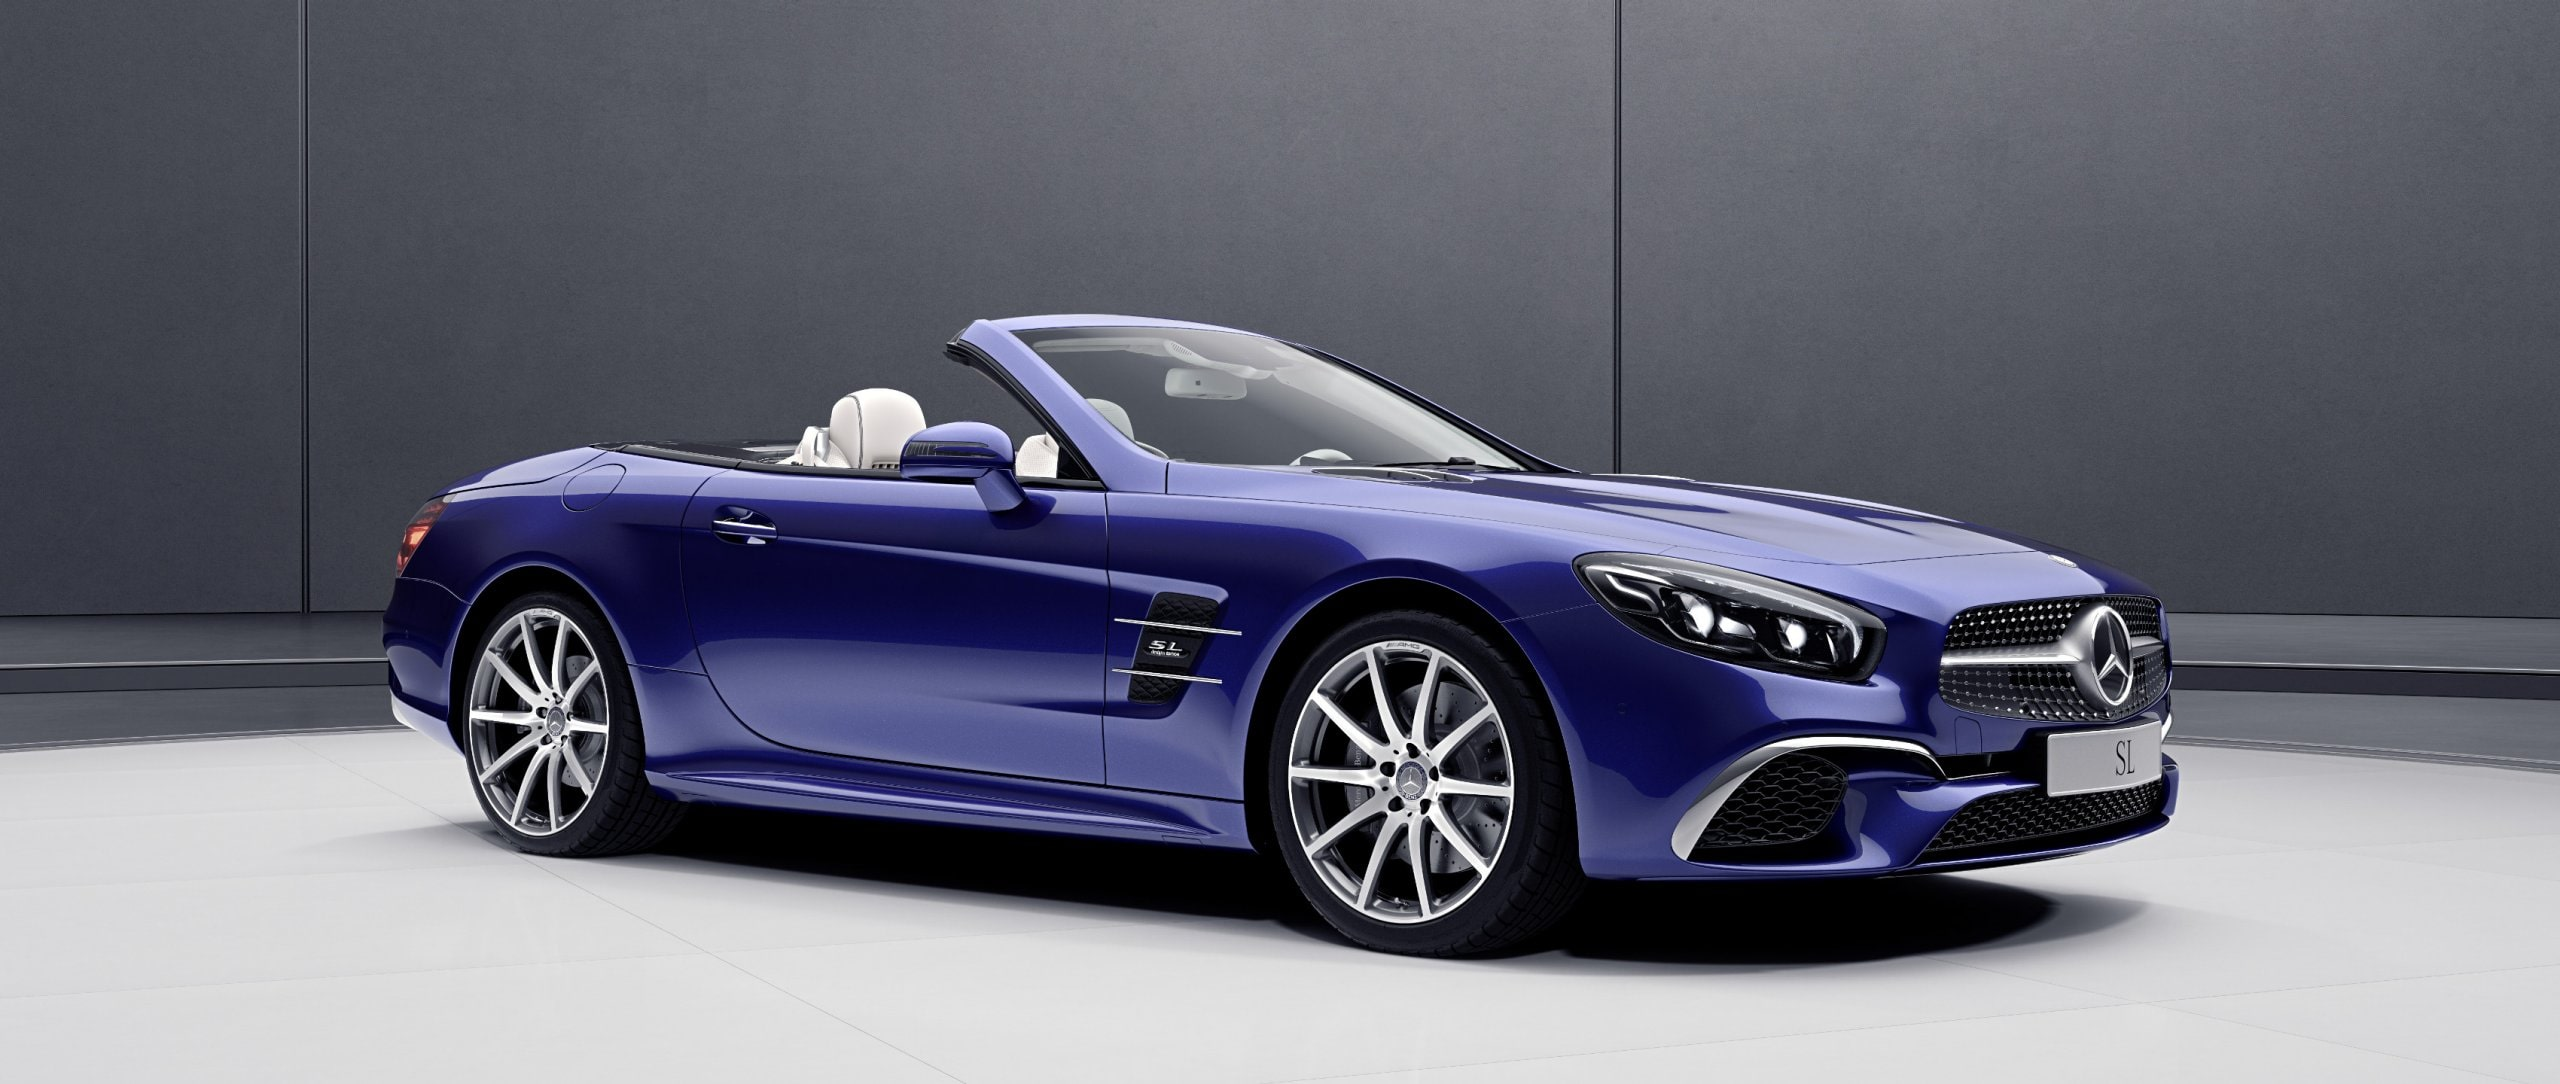 The Mercedes-Benz SL designo Edition (R 231) is tailored towards exclusivity and fine interior design.